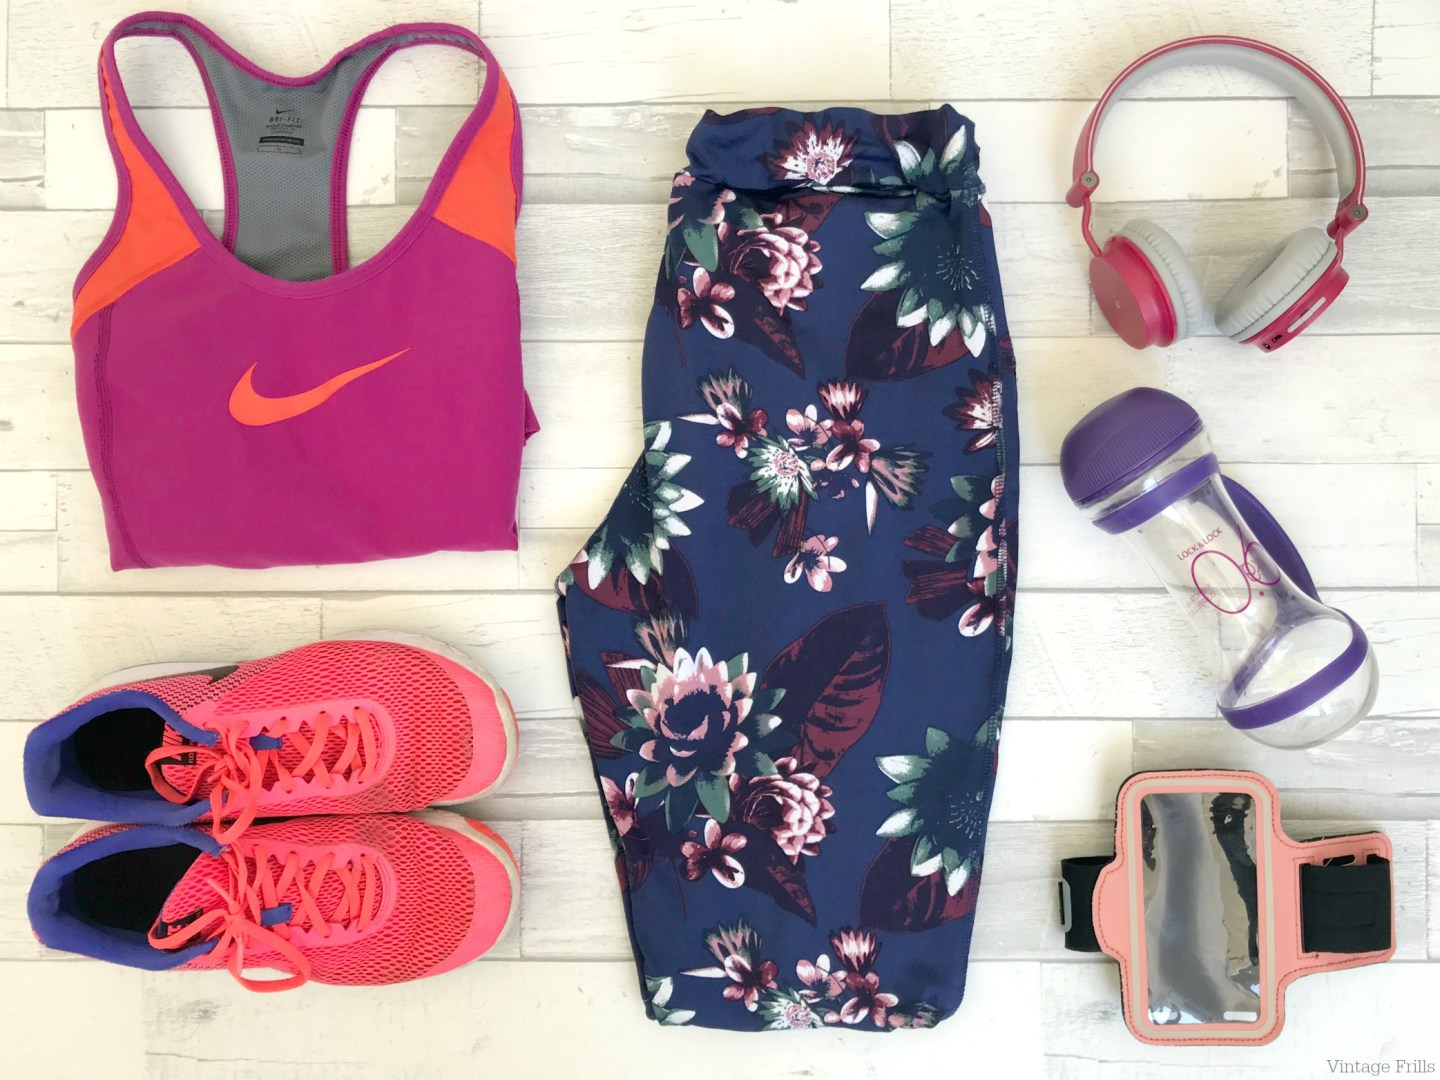 What to pack in a gym bag